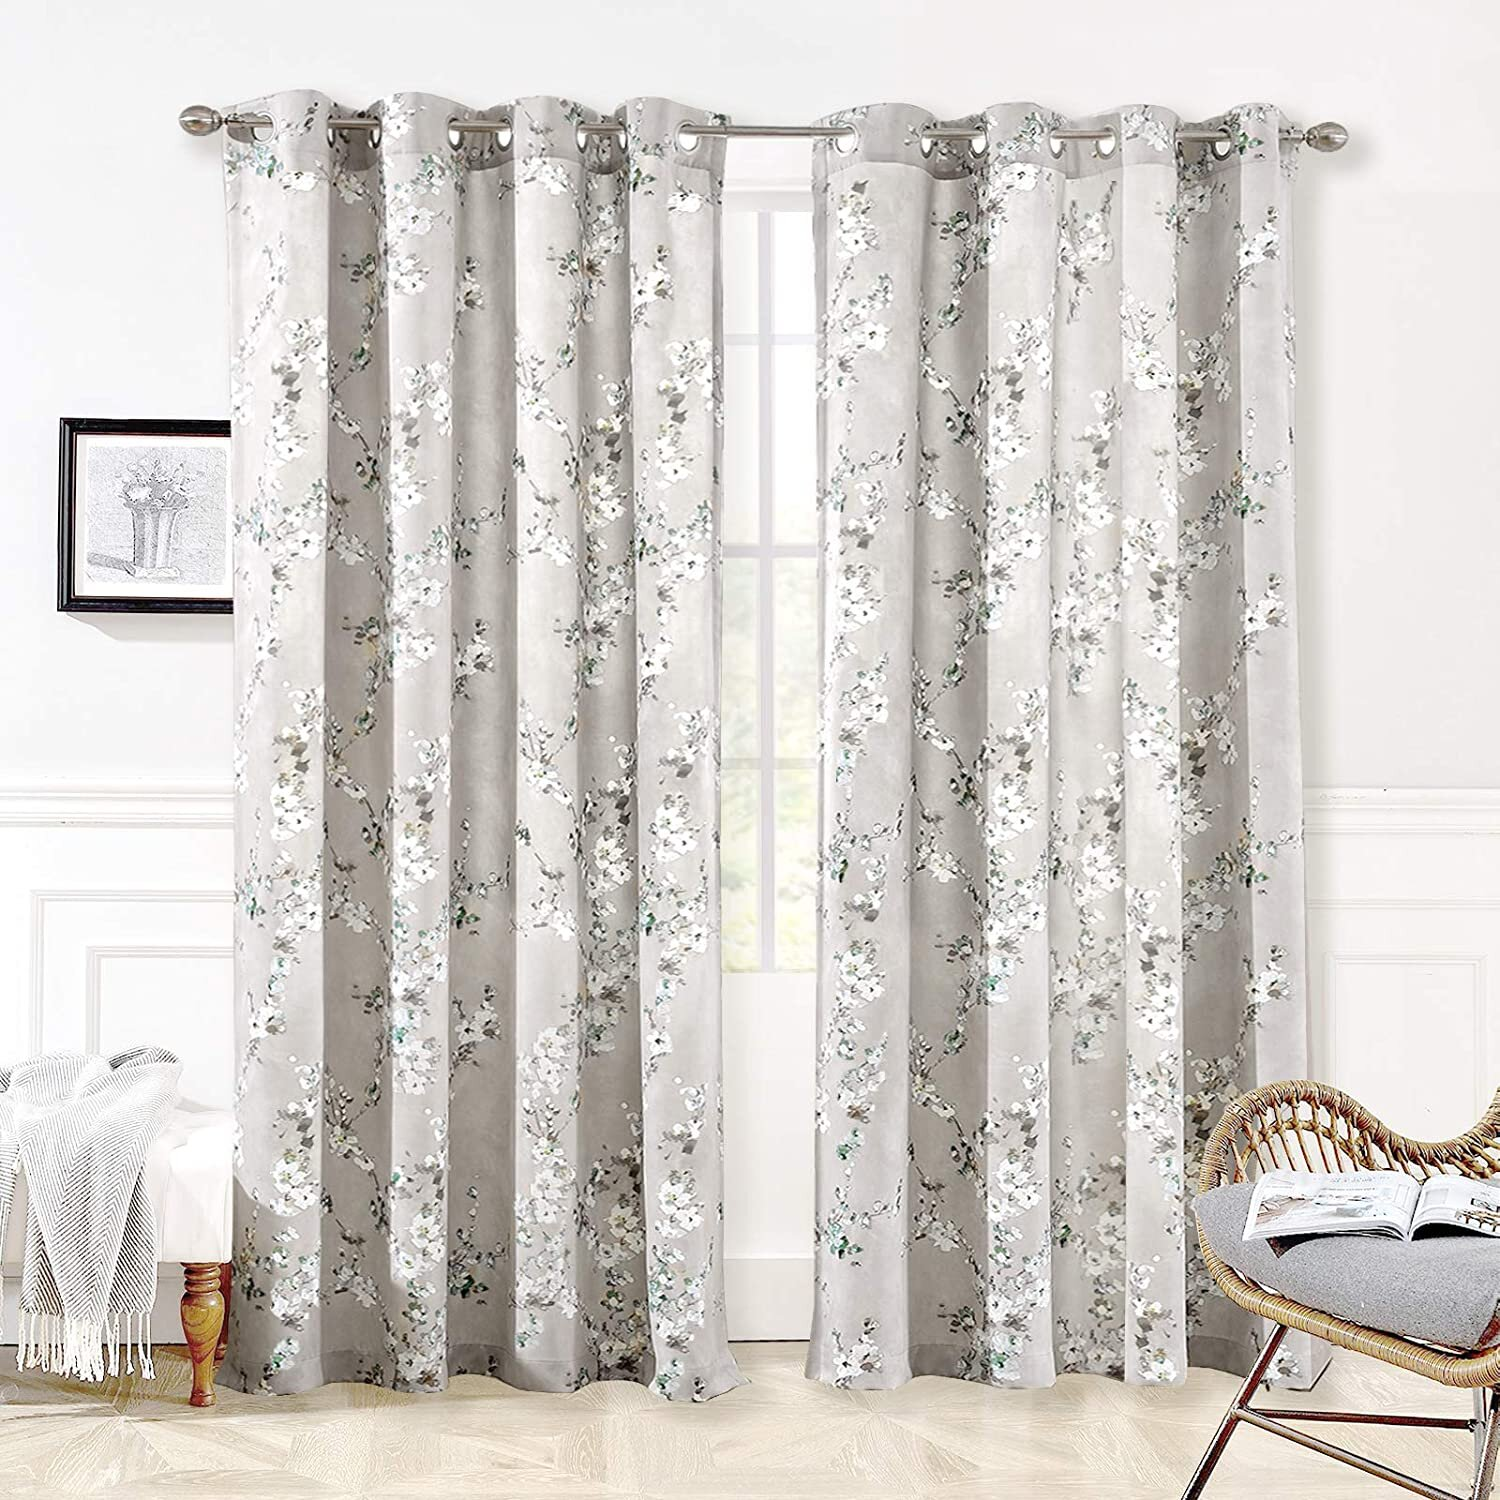 Room Darkening Bloomsbury Market Curtains Drapes You Ll Love In 2021 Wayfair